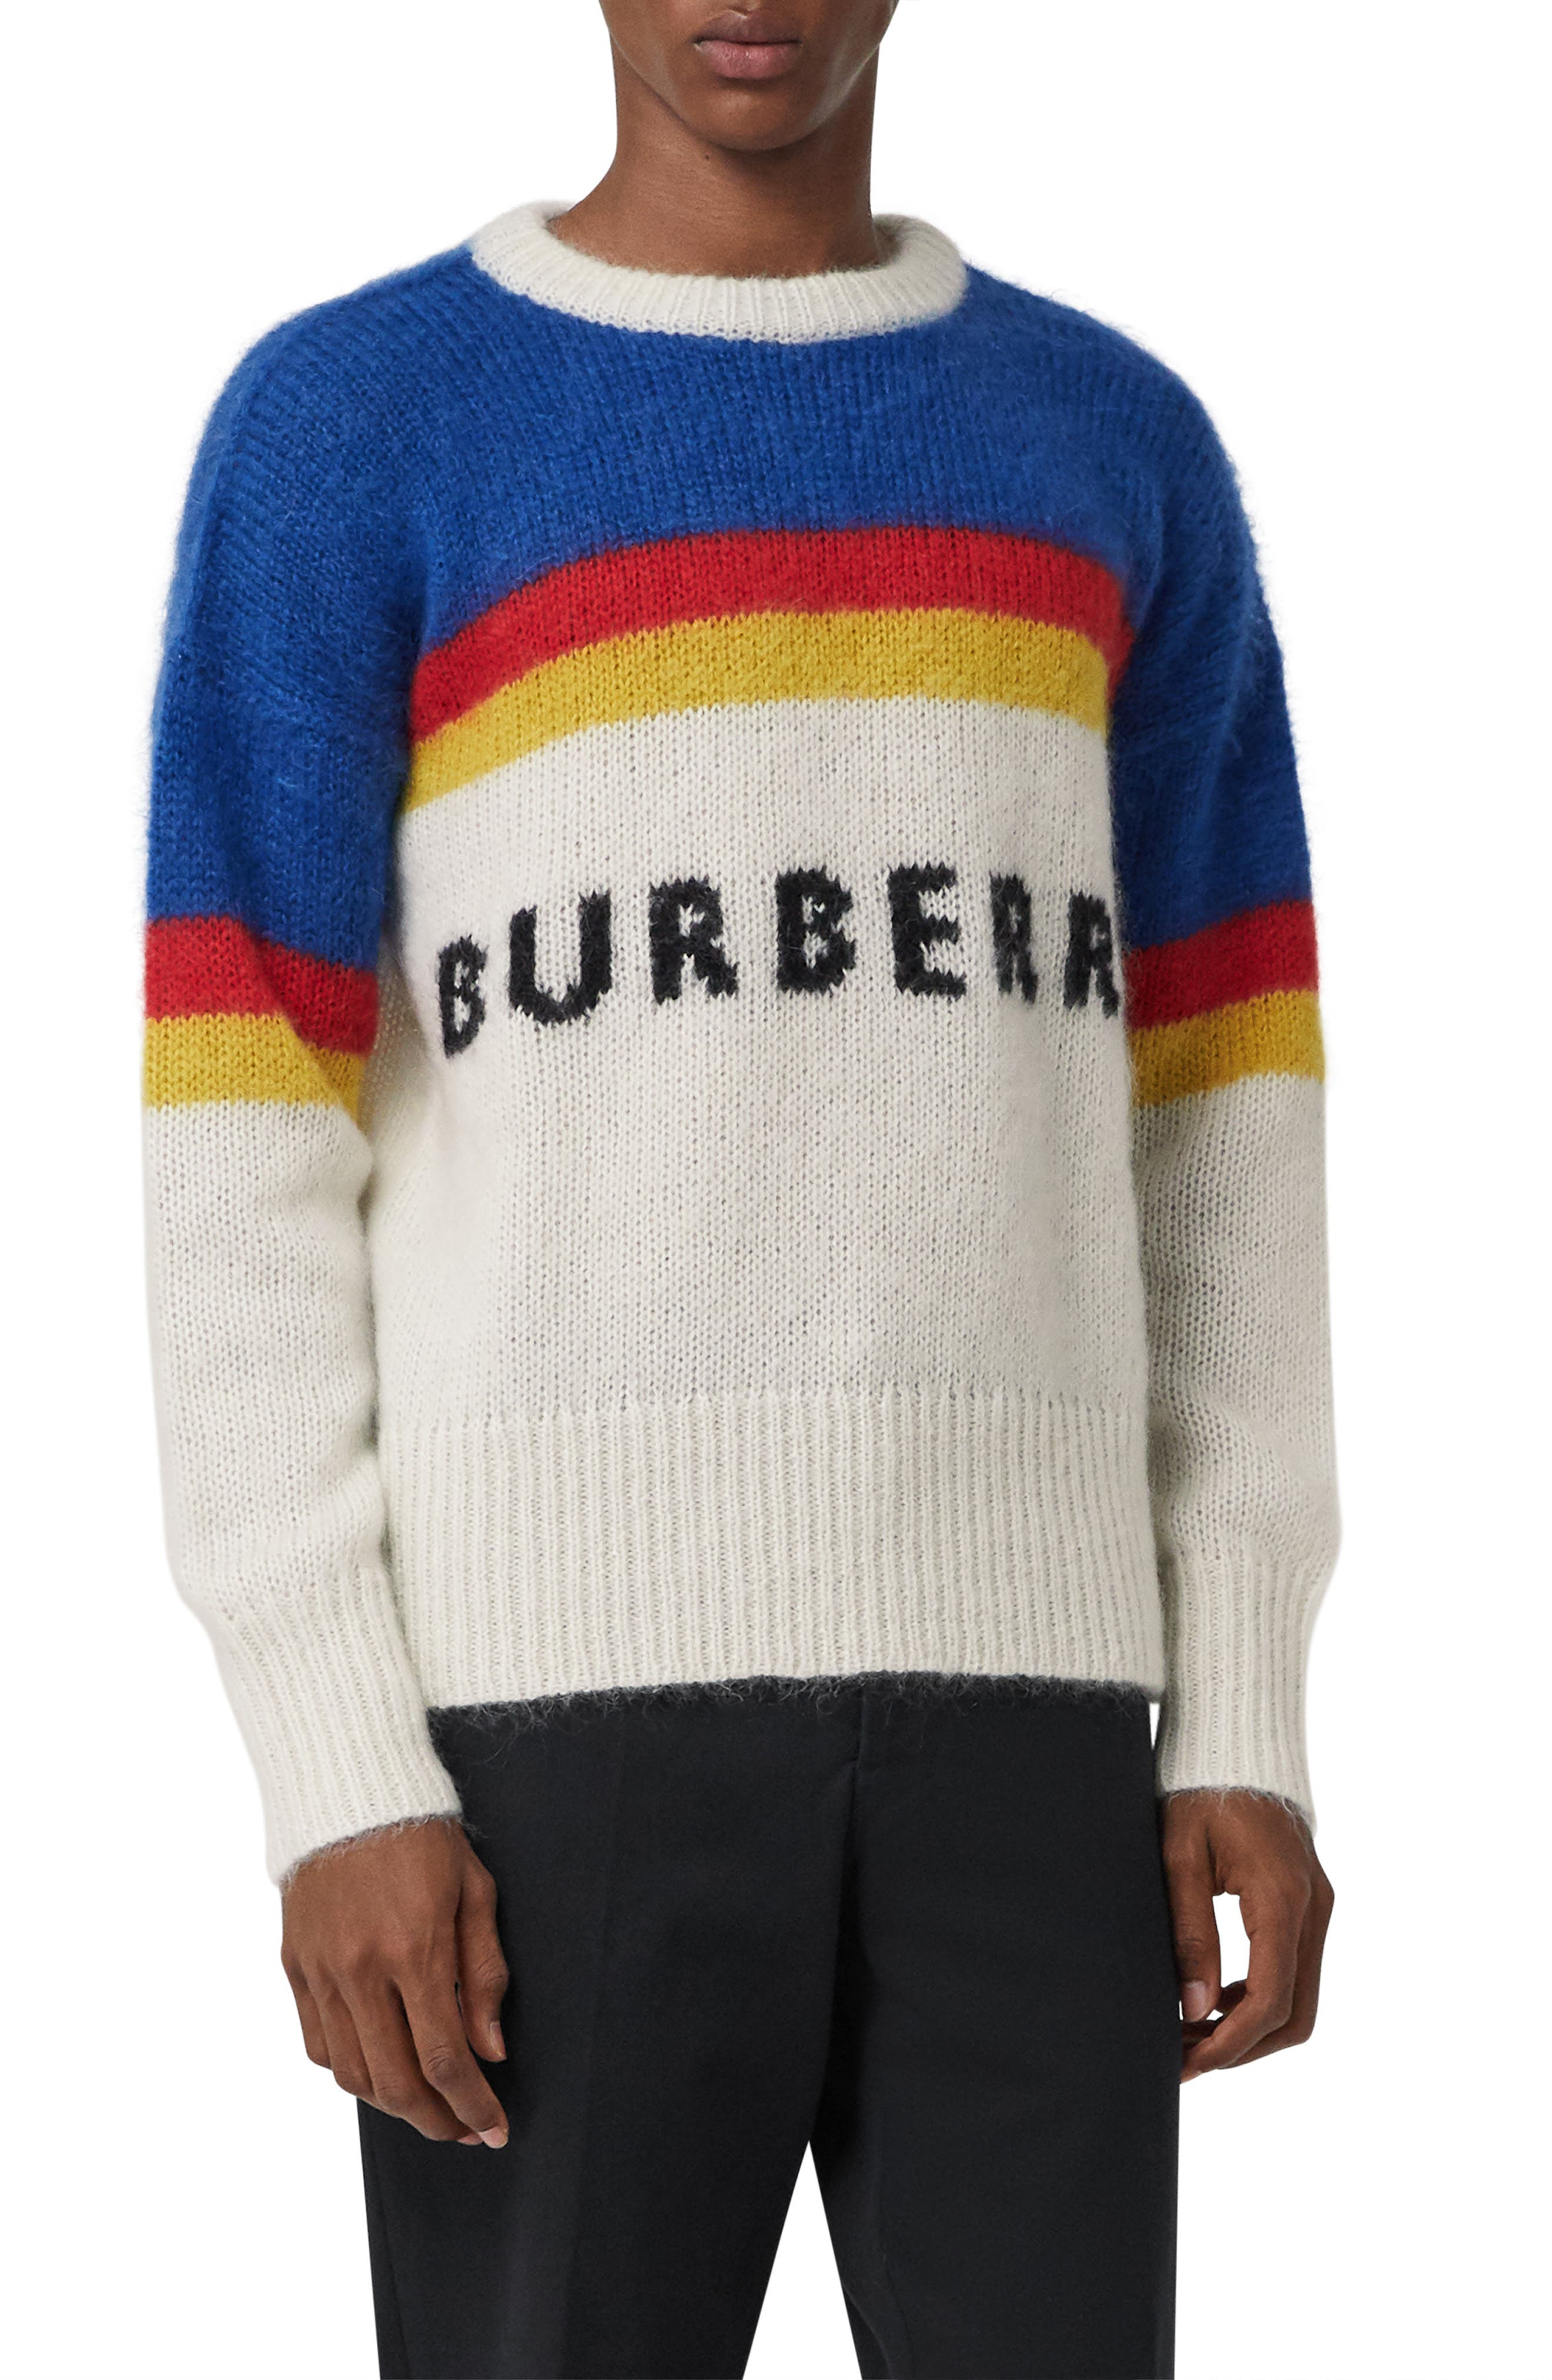 Osbourne Crewneck Sweater,                             Main thumbnail 1, color,                             400